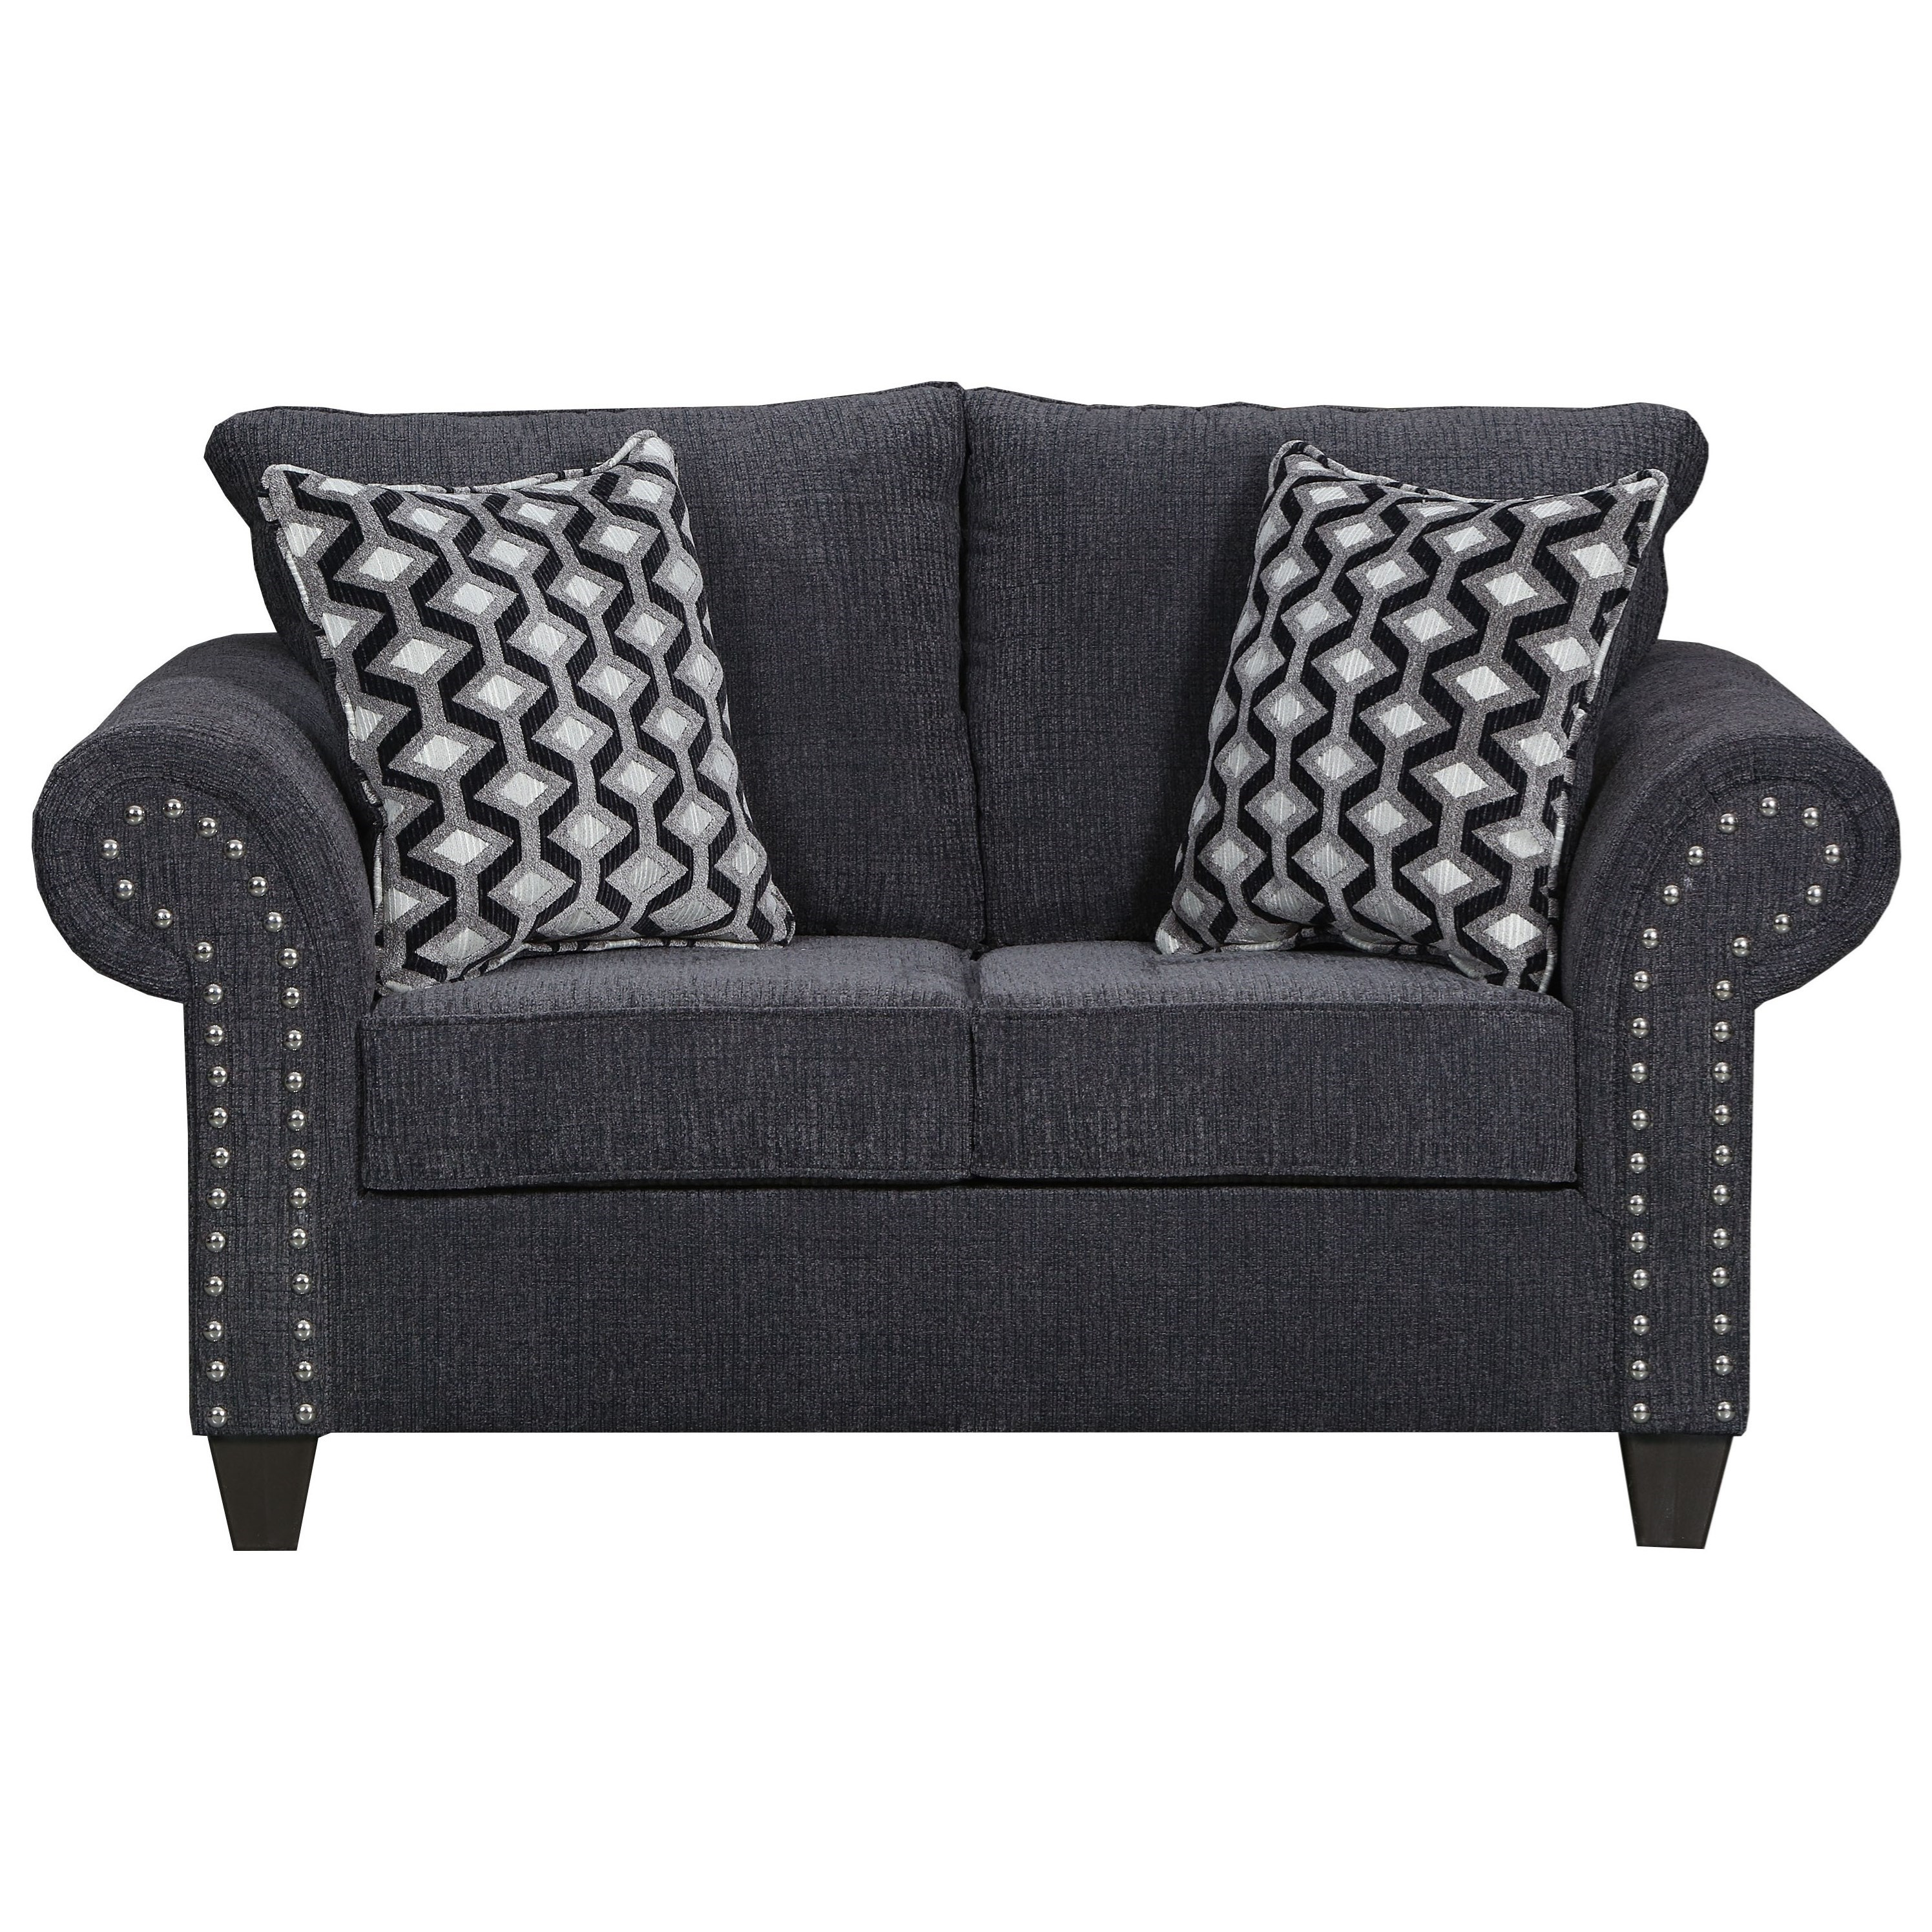 8036 Love Seat by United Furniture Industries at Dream Home Interiors